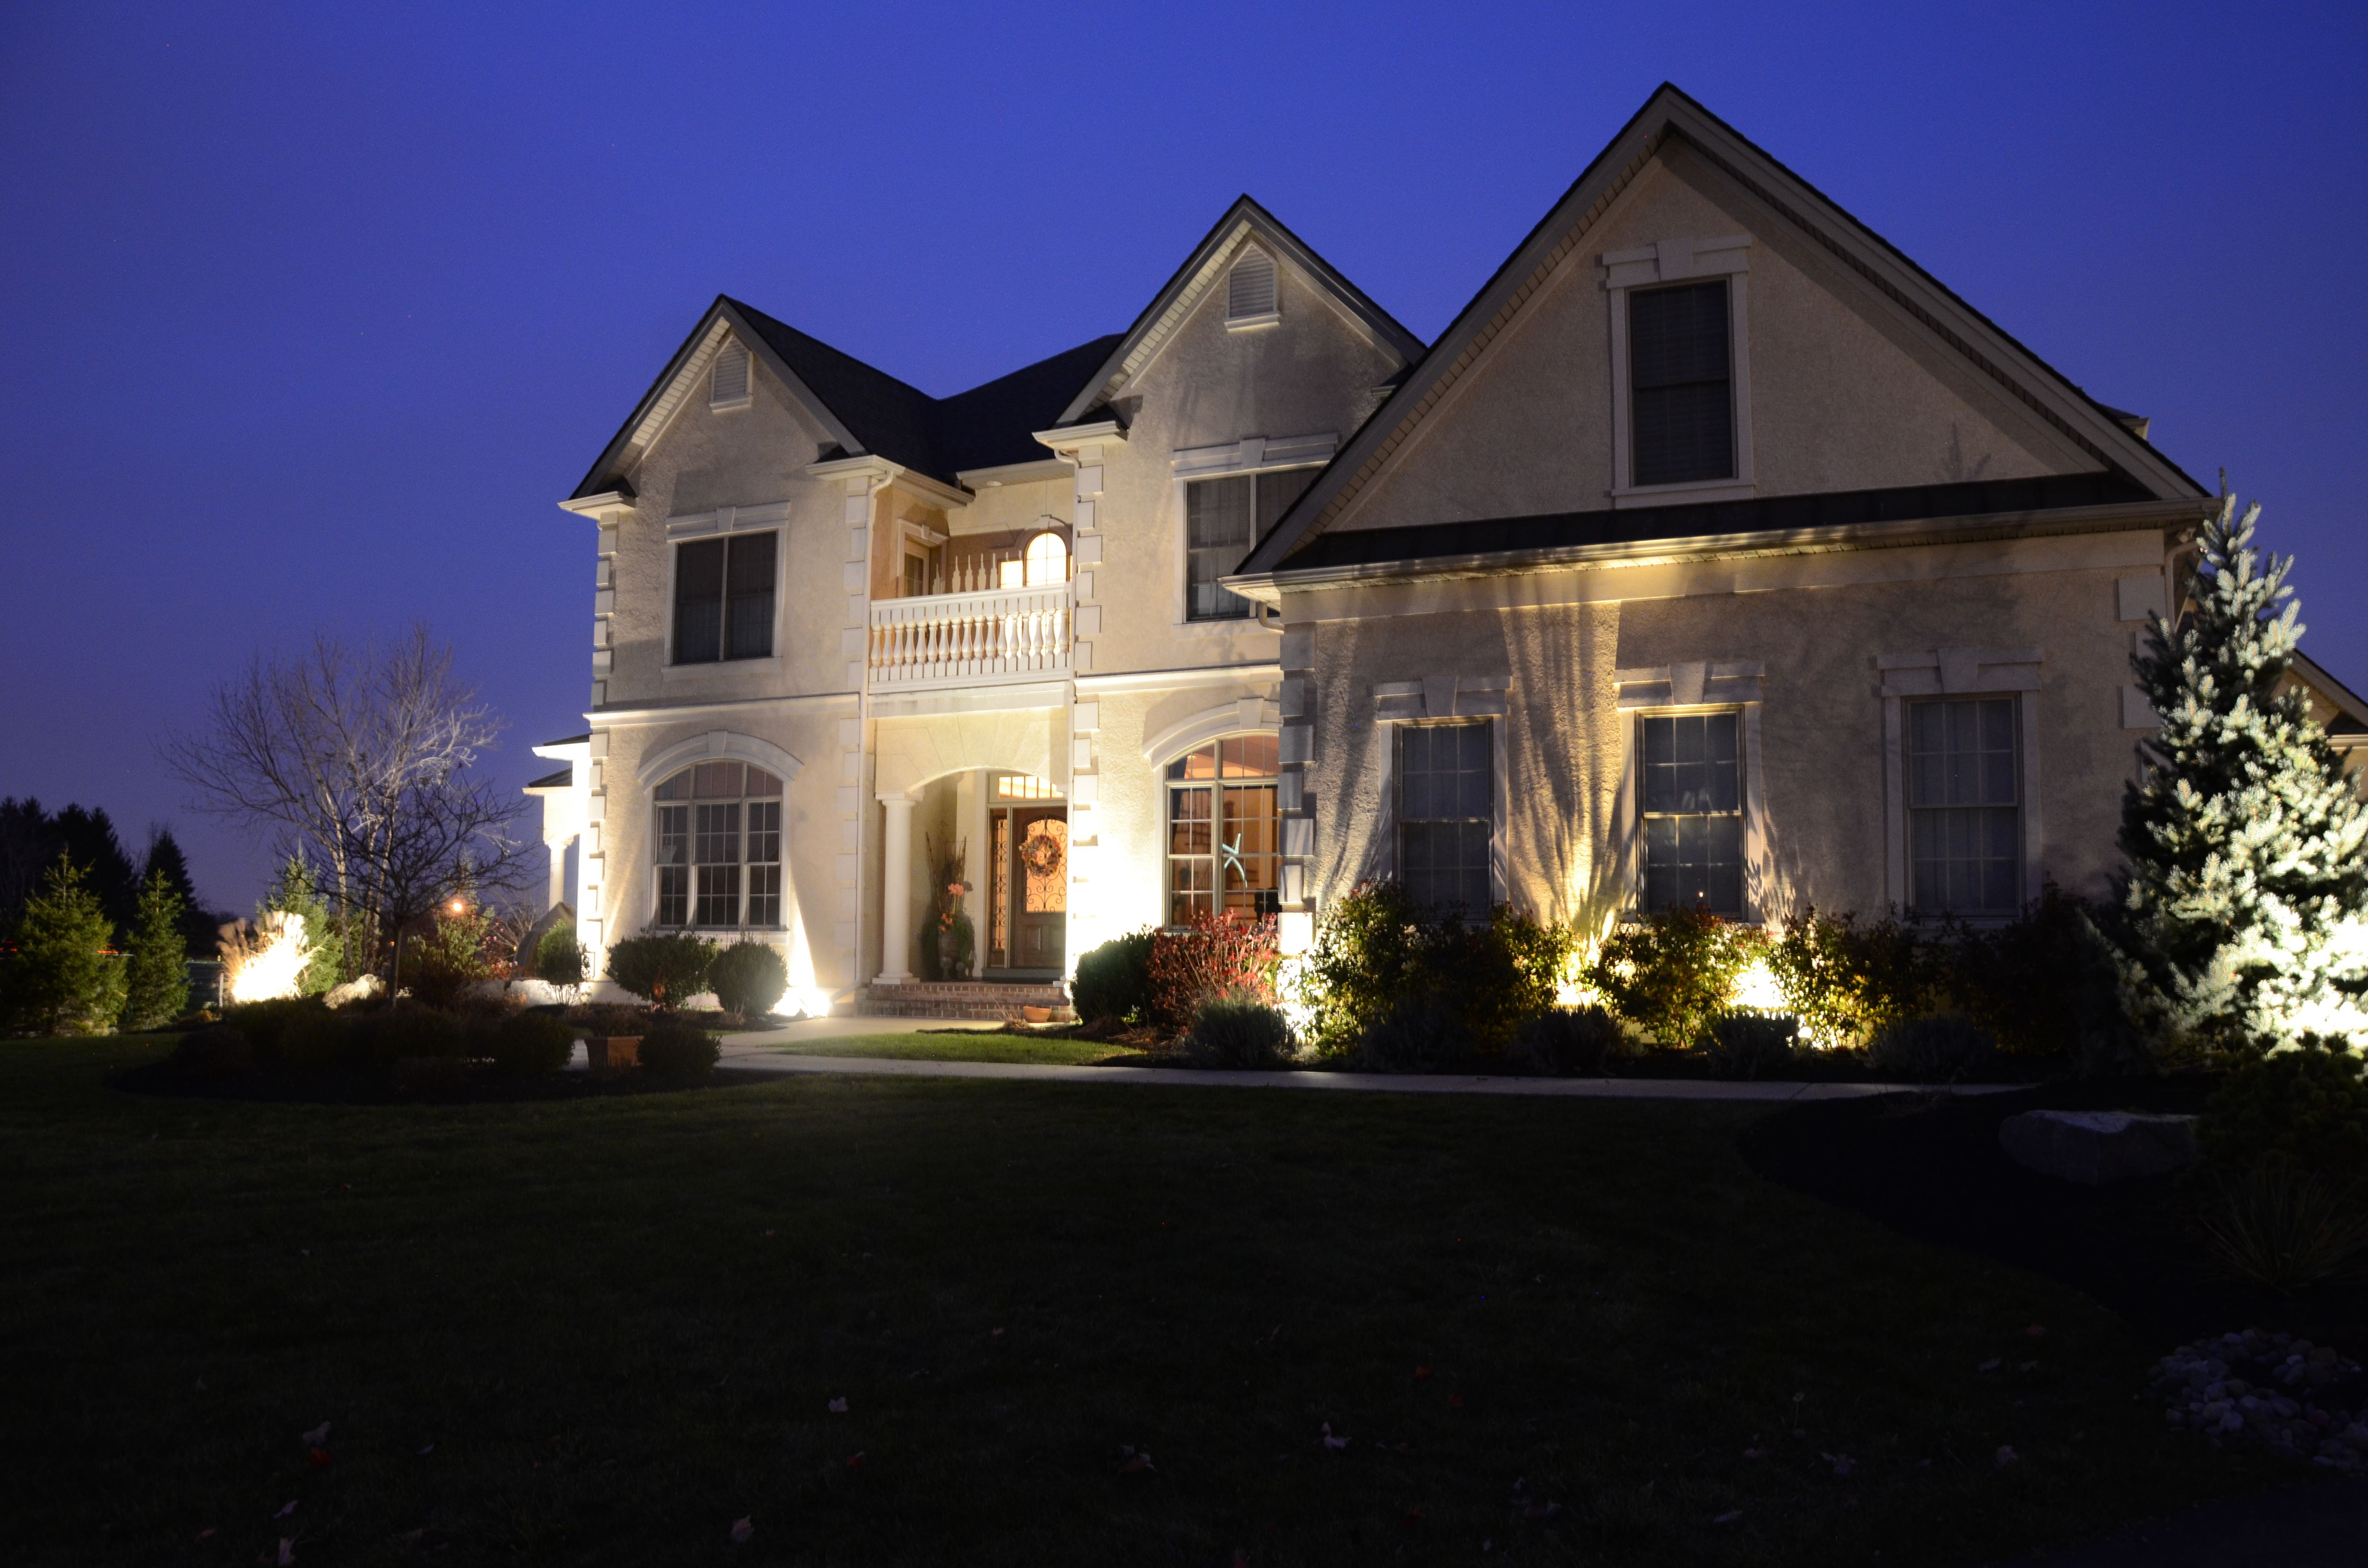 Landscape Lights And Spotlights Showcase This House Hardscape